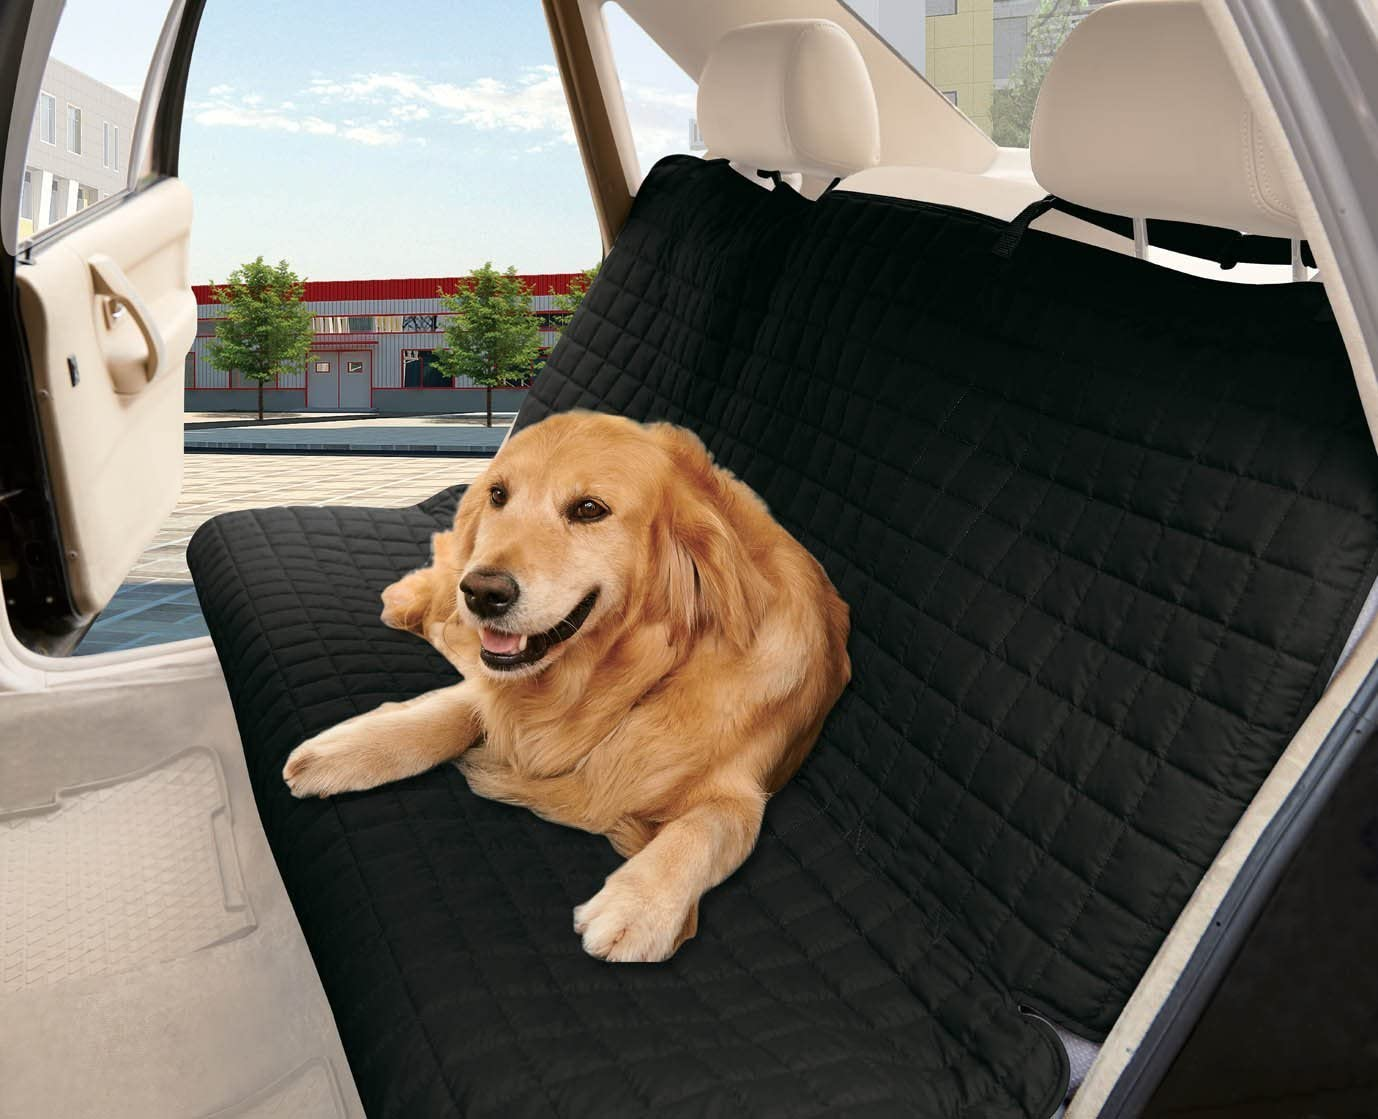 Elegant Comfort Quilted 100 Waterproof Premium Quality Bench Car Seat Protector Cover Entire Rear Seat for Pets – Ties to Stop Slipping Off The Bench, Black